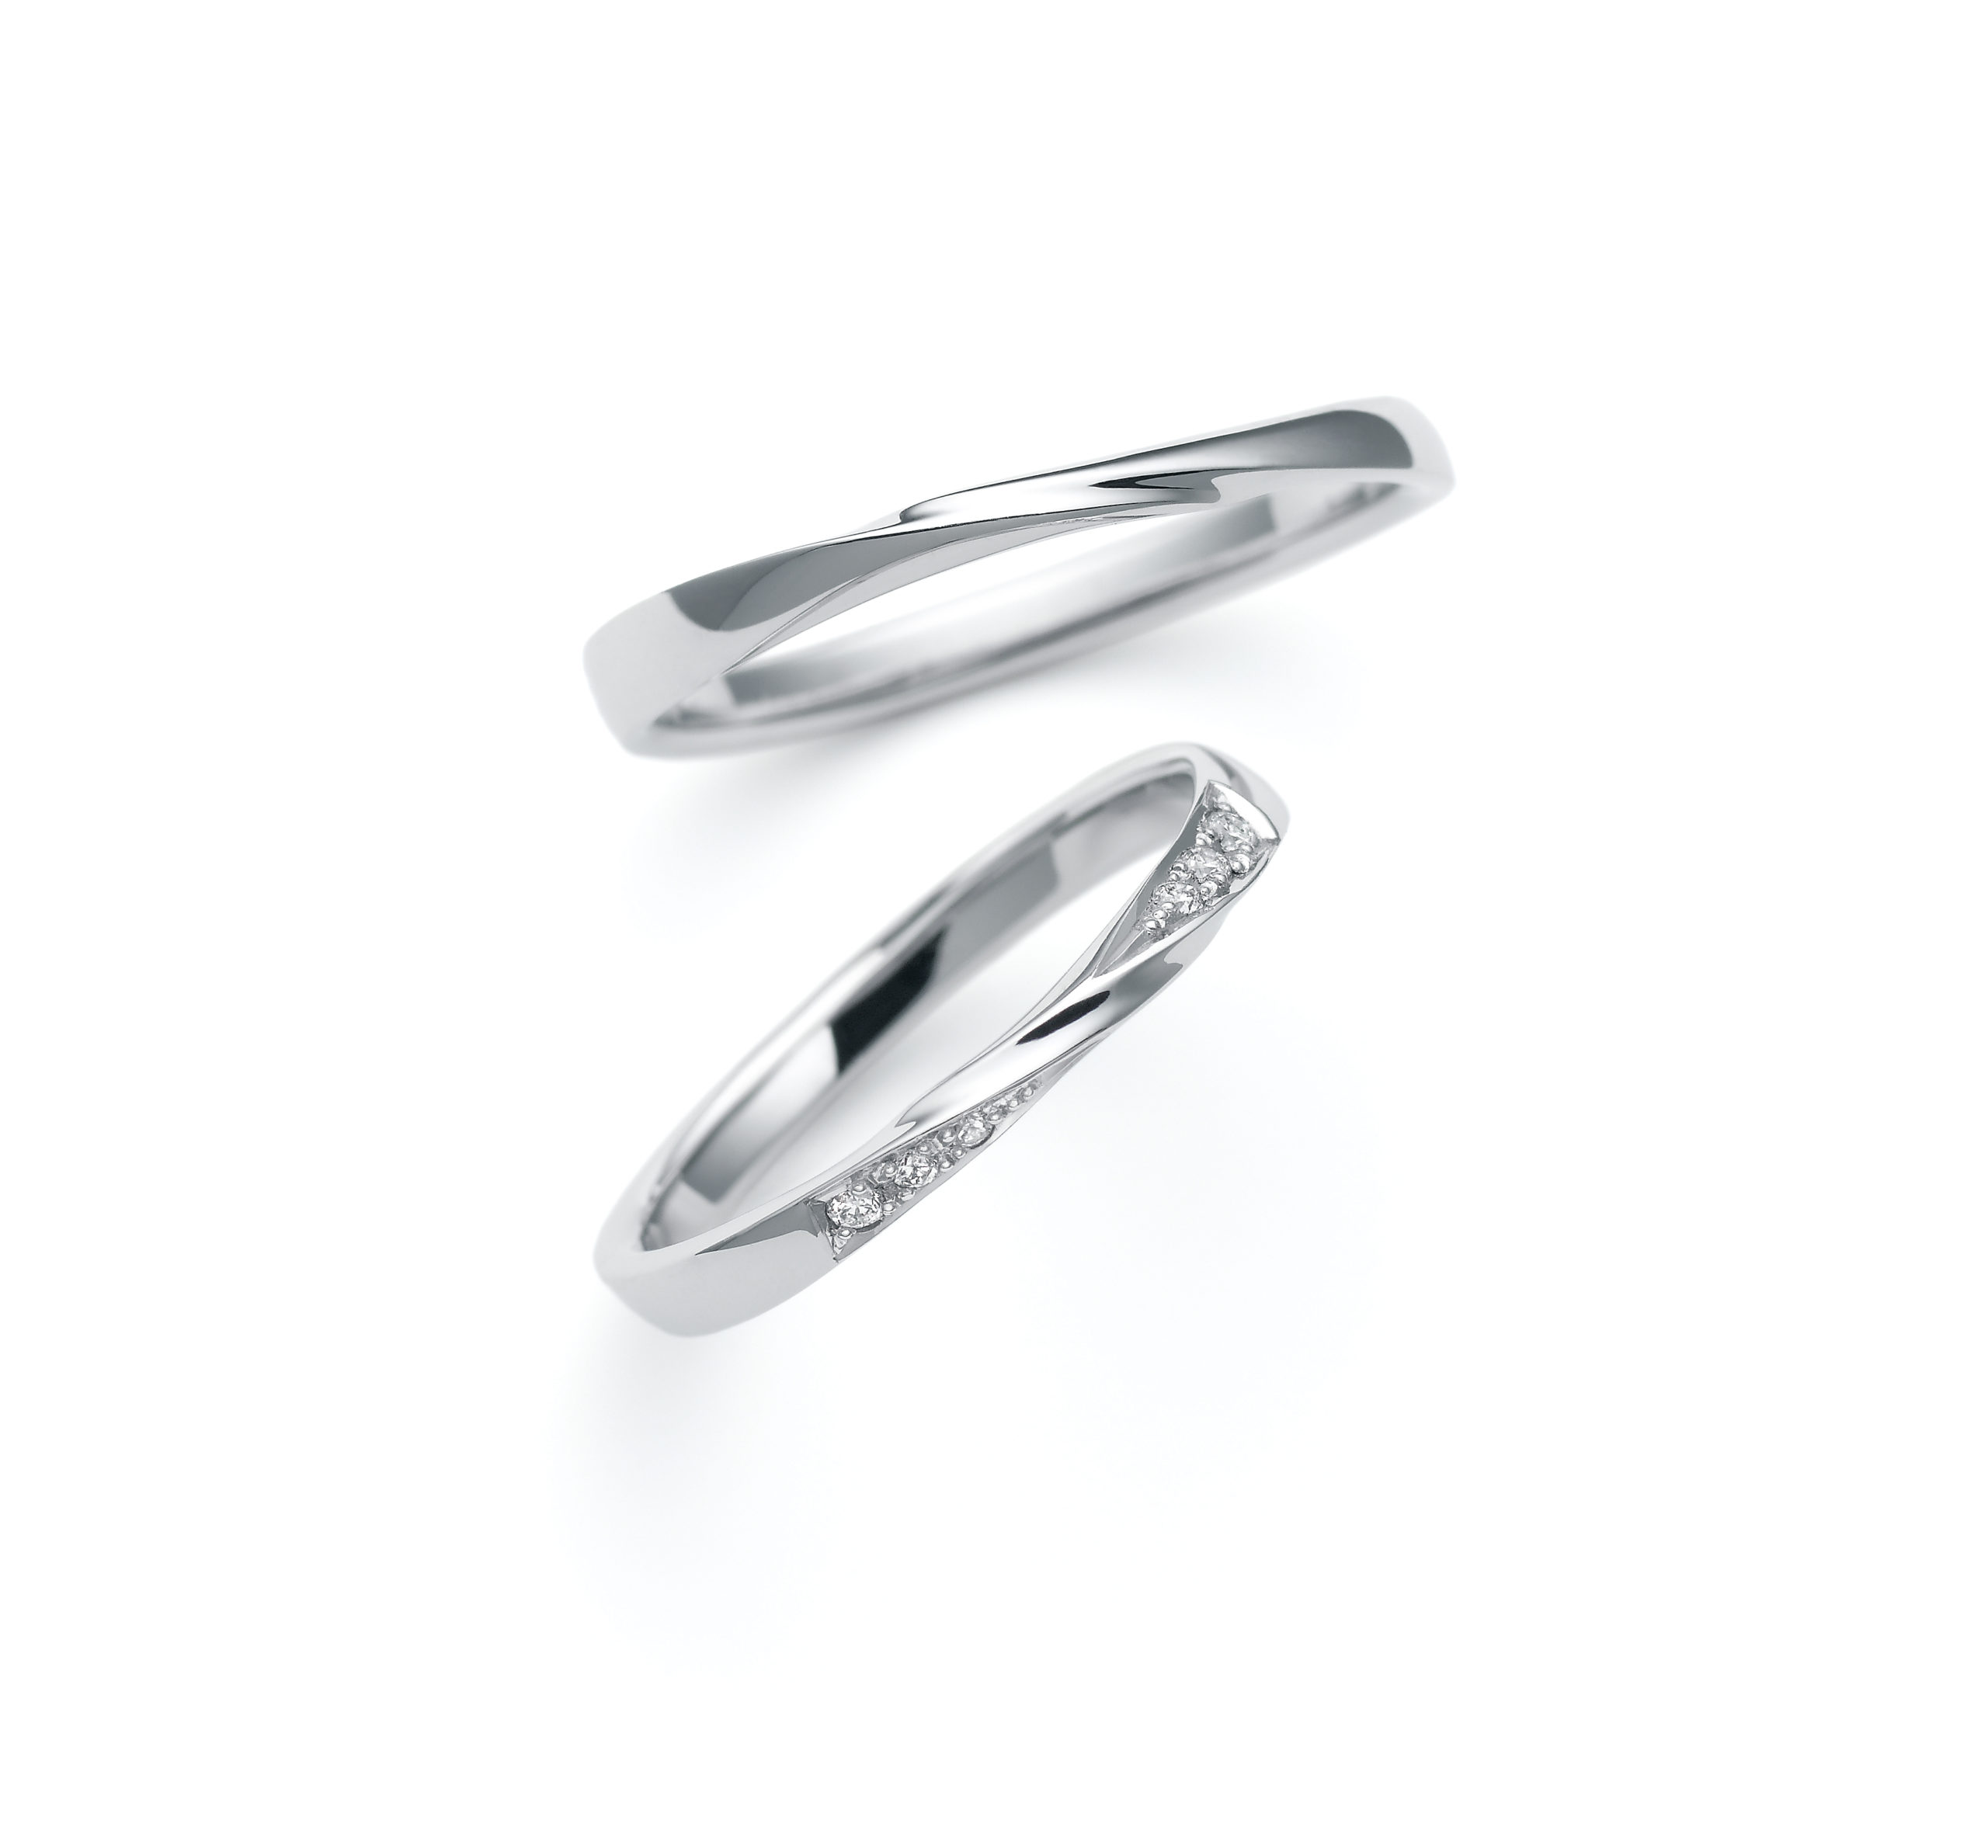 Wedding Bands - Singapore:CN-045 / CN-046_01